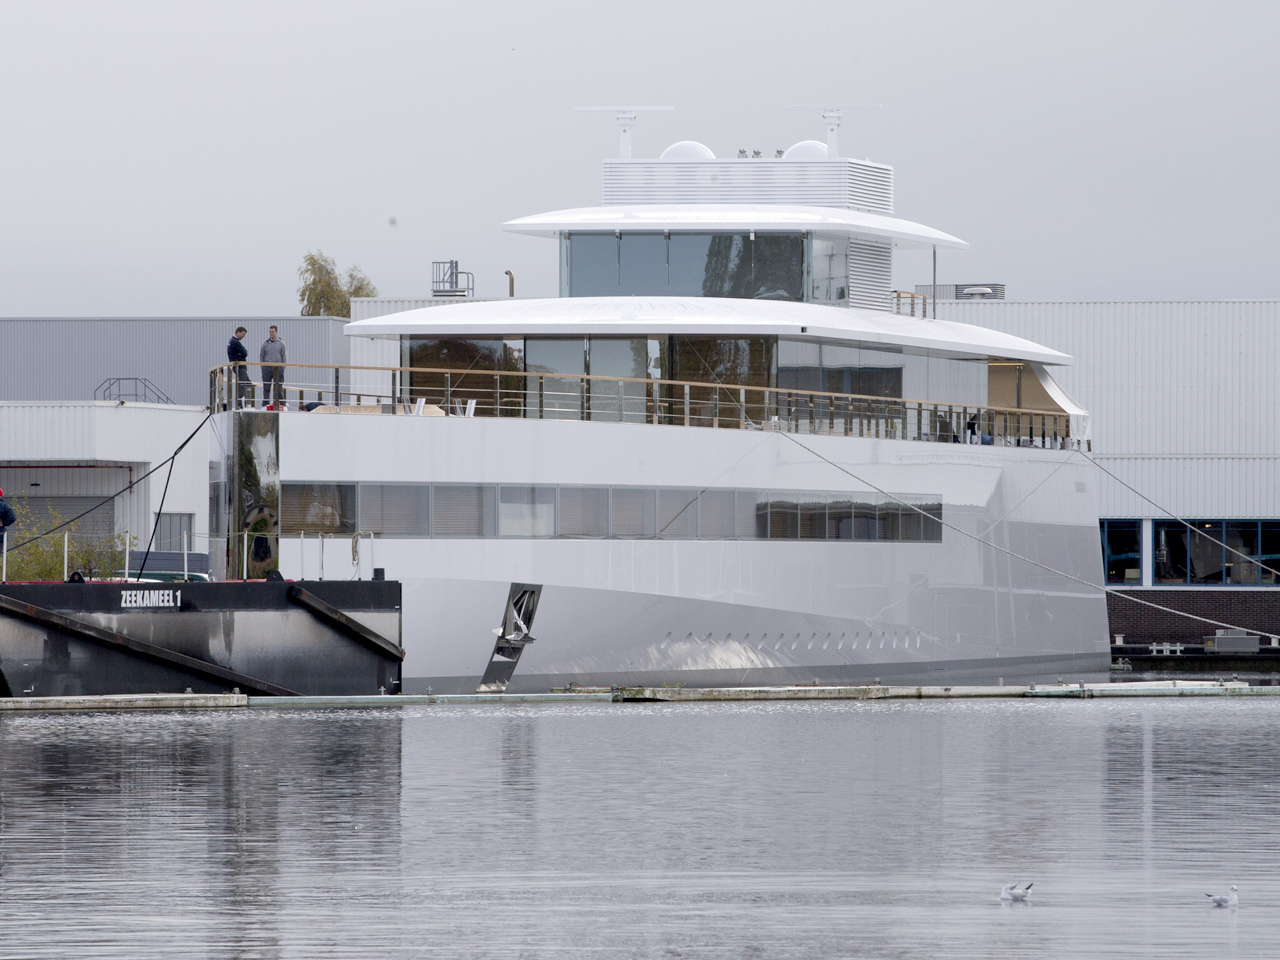 Steve jobs designed yacht launched in the netherlands for Product design jobs amsterdam